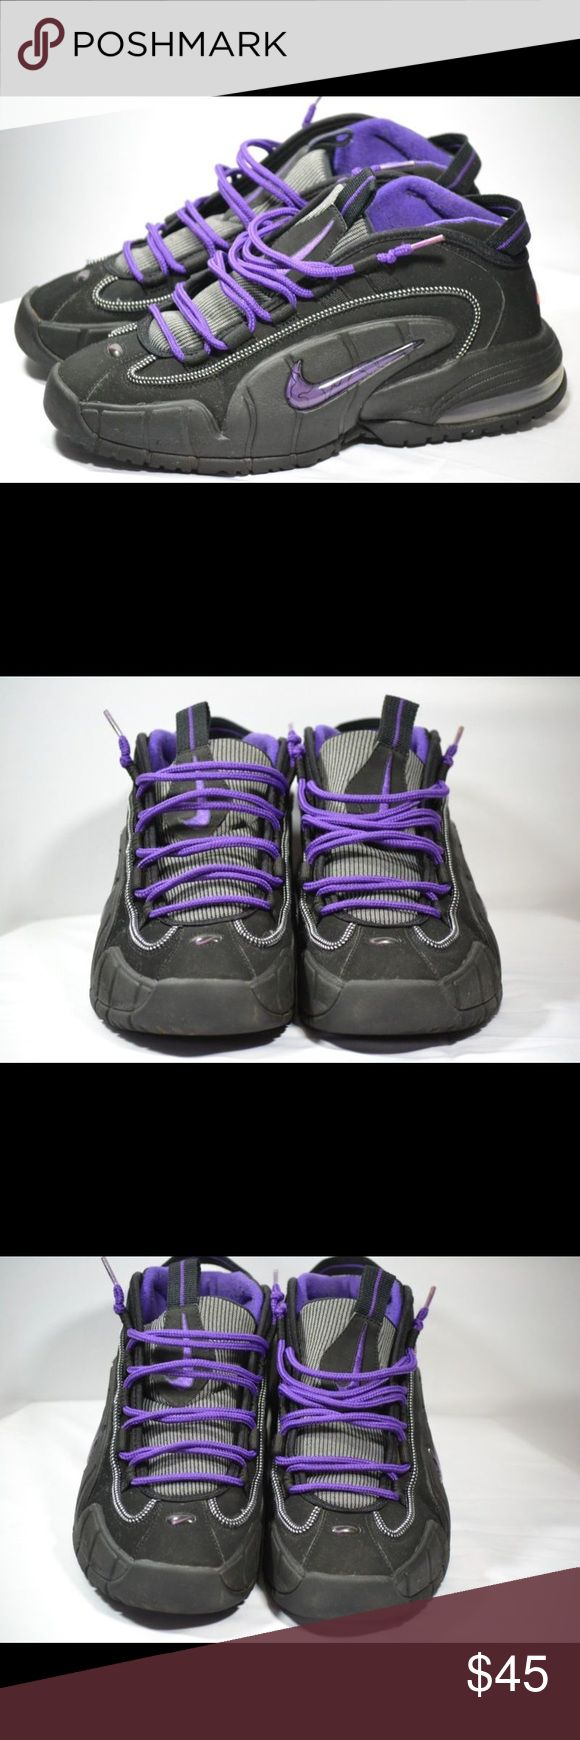 Nike Air Max Penny Phoenix Suns 311089-002 SZ 9 This is a great pair of Nike Air Max Penny Hardaway Phoenix Suns black and purple basketball shoes. They are in great used condition. They are showing some wear on and around the shoes laces. No Insoles.  • Men's SZ 9 Nike Shoes Sneakers